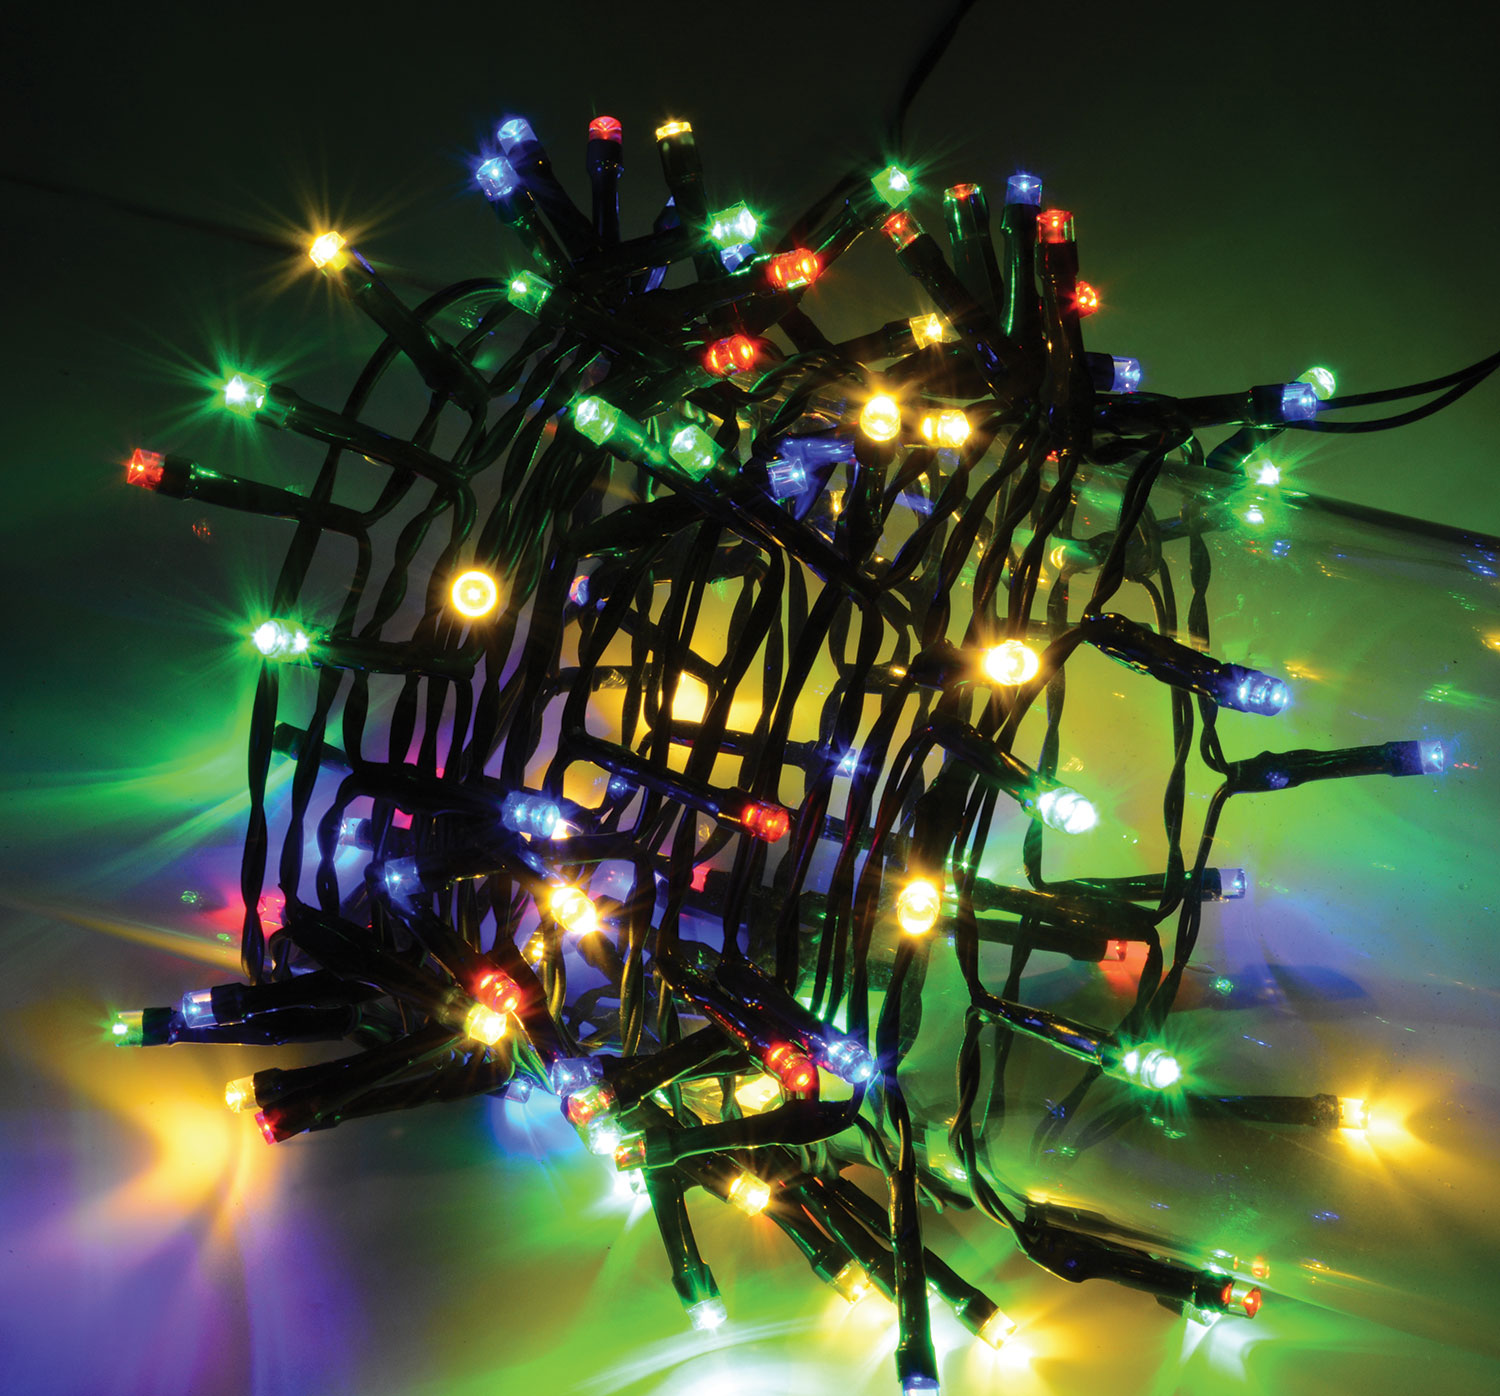 100 LED STRING LIGHTS WITH AUTO-TIMER CONTROL